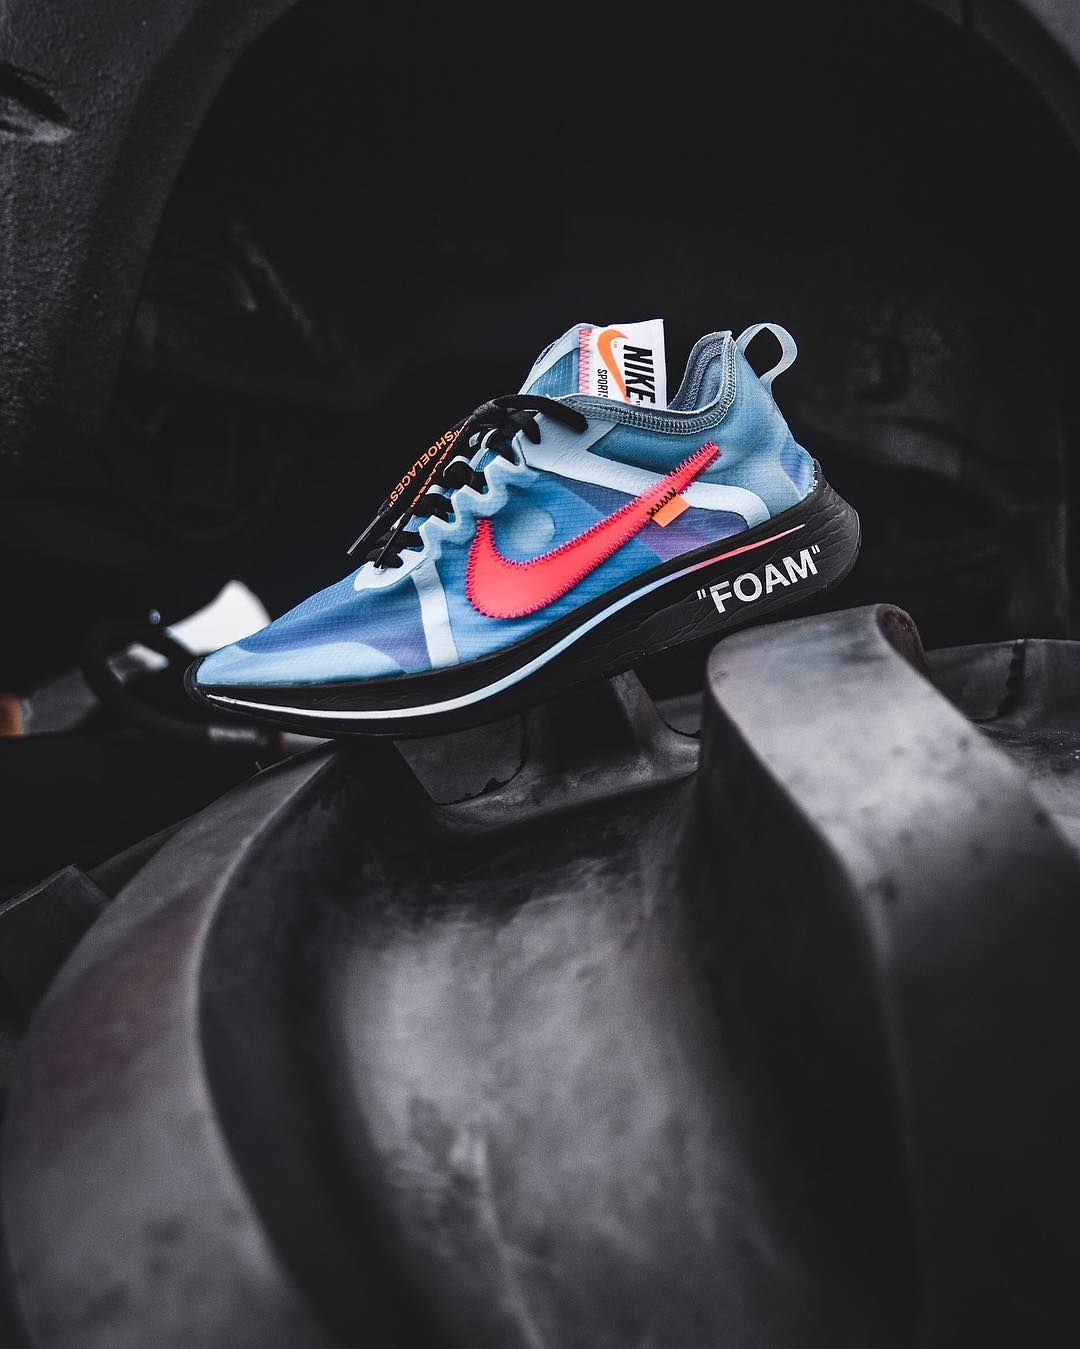 The Off White x Nike Zoom Fly SP Surfaces In A 'Blue